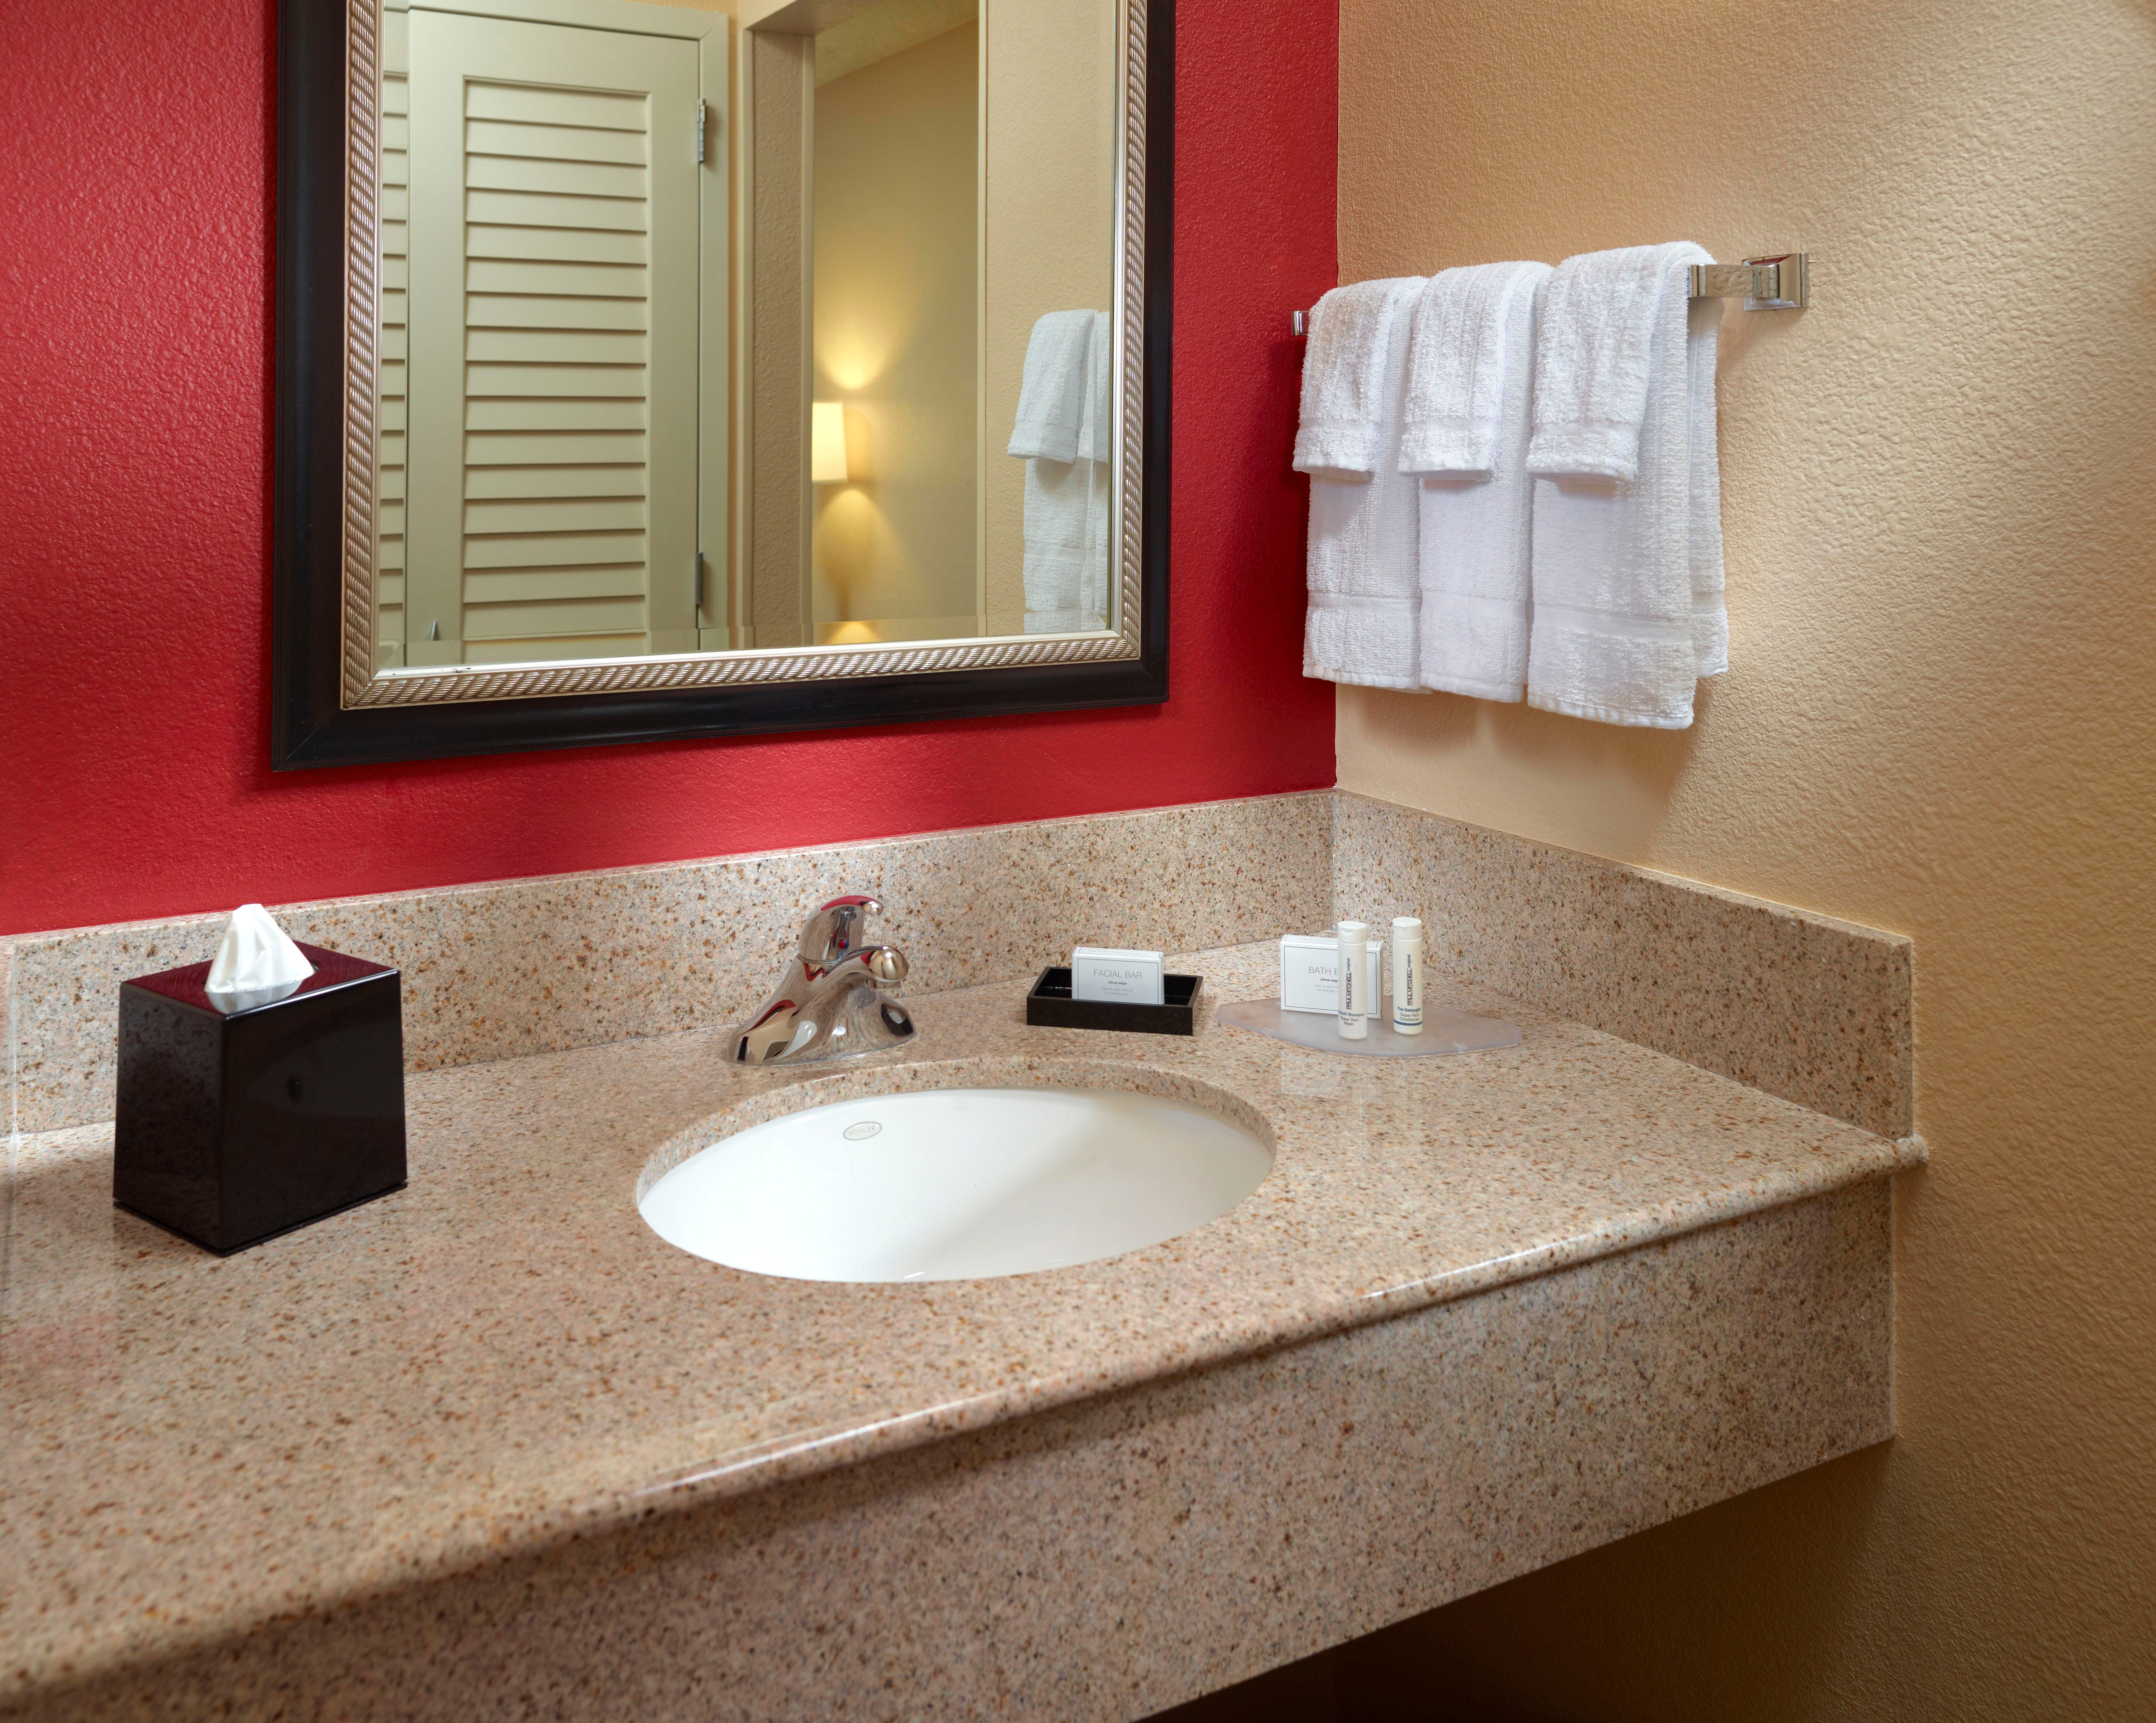 Courtyard by Marriott Columbus image 12